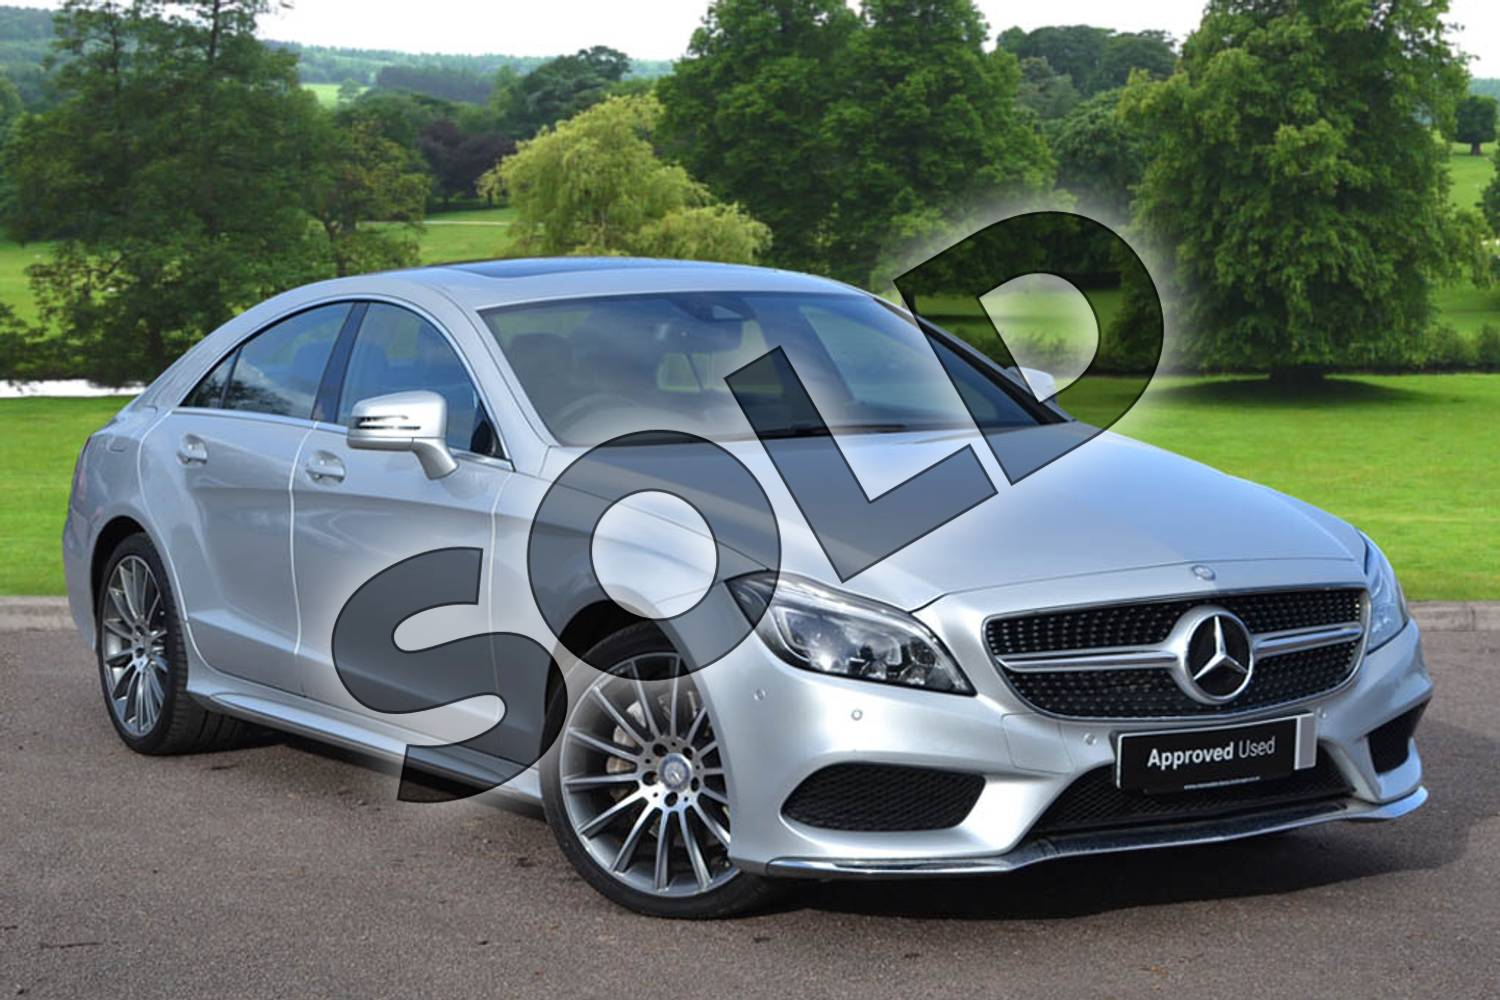 2015 Mercedes-Benz CLS Diesel Coupe CLS 350 BlueTEC AMG Line Premium 4dr 9G-Tronic in Iridium Silver Metallic at Mercedes-Benz of Grimsby